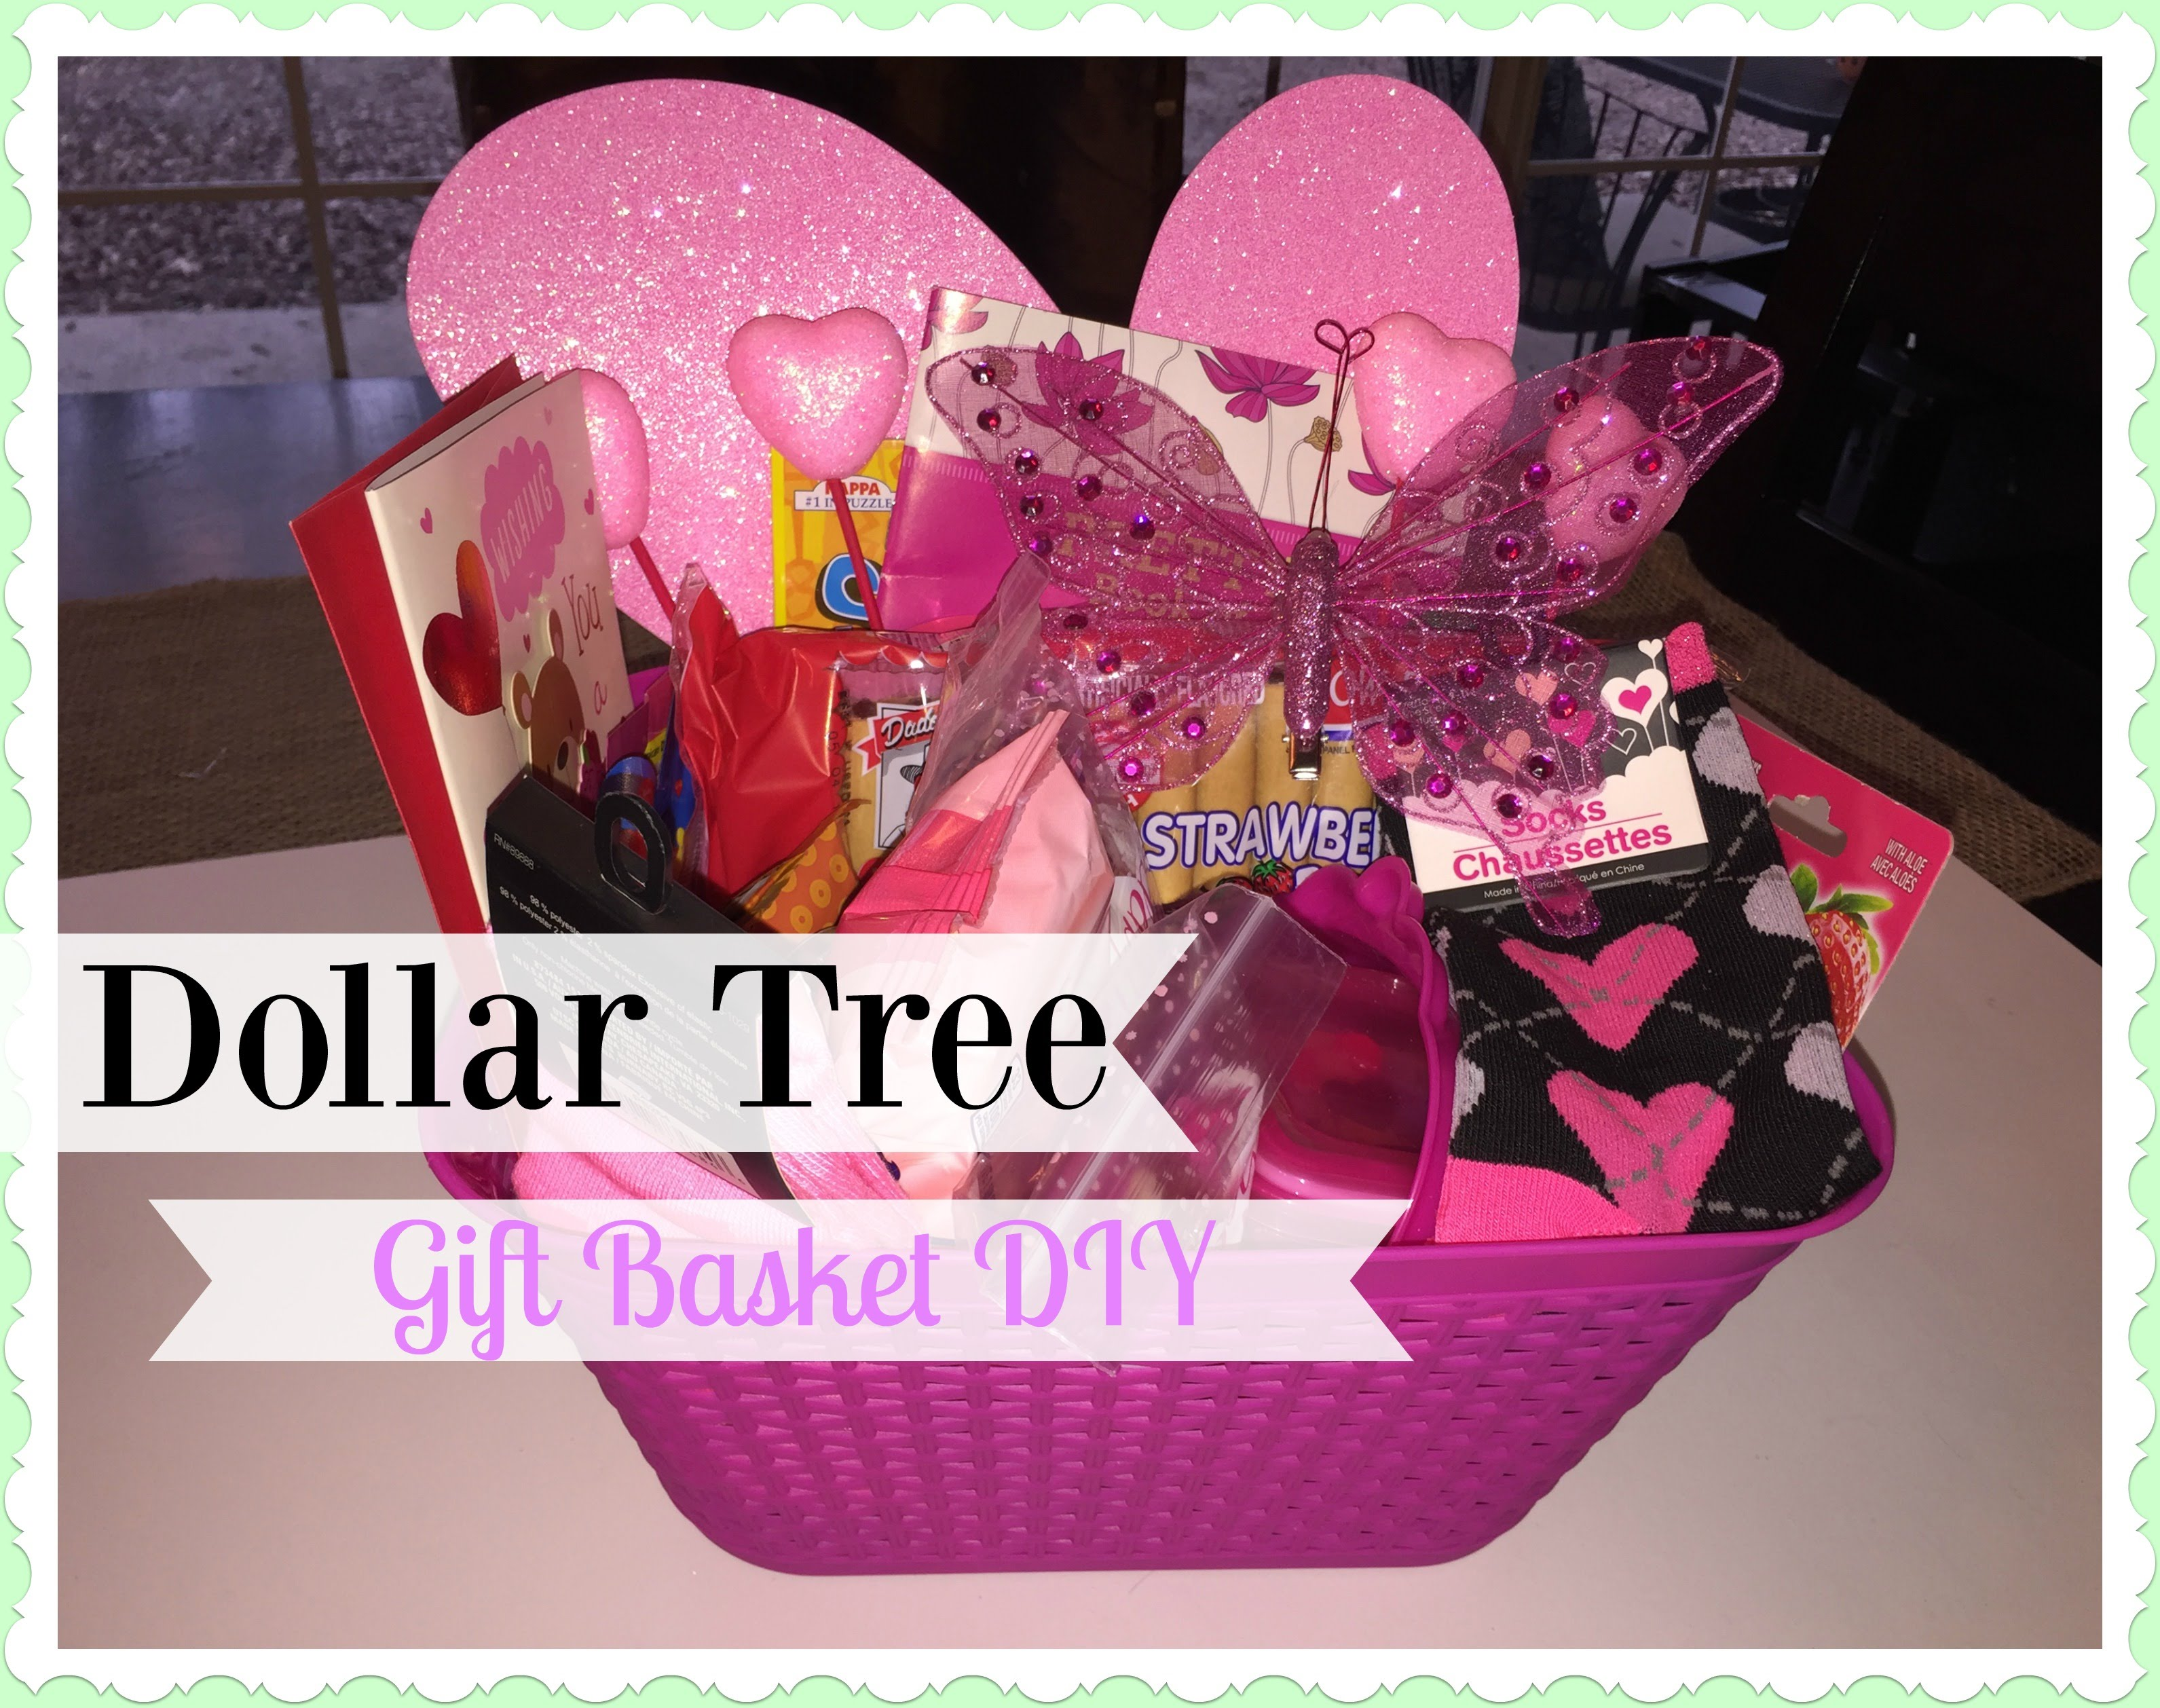 2016 DOLLAR TREE Valentine's Day Gift Basket! - YouTube